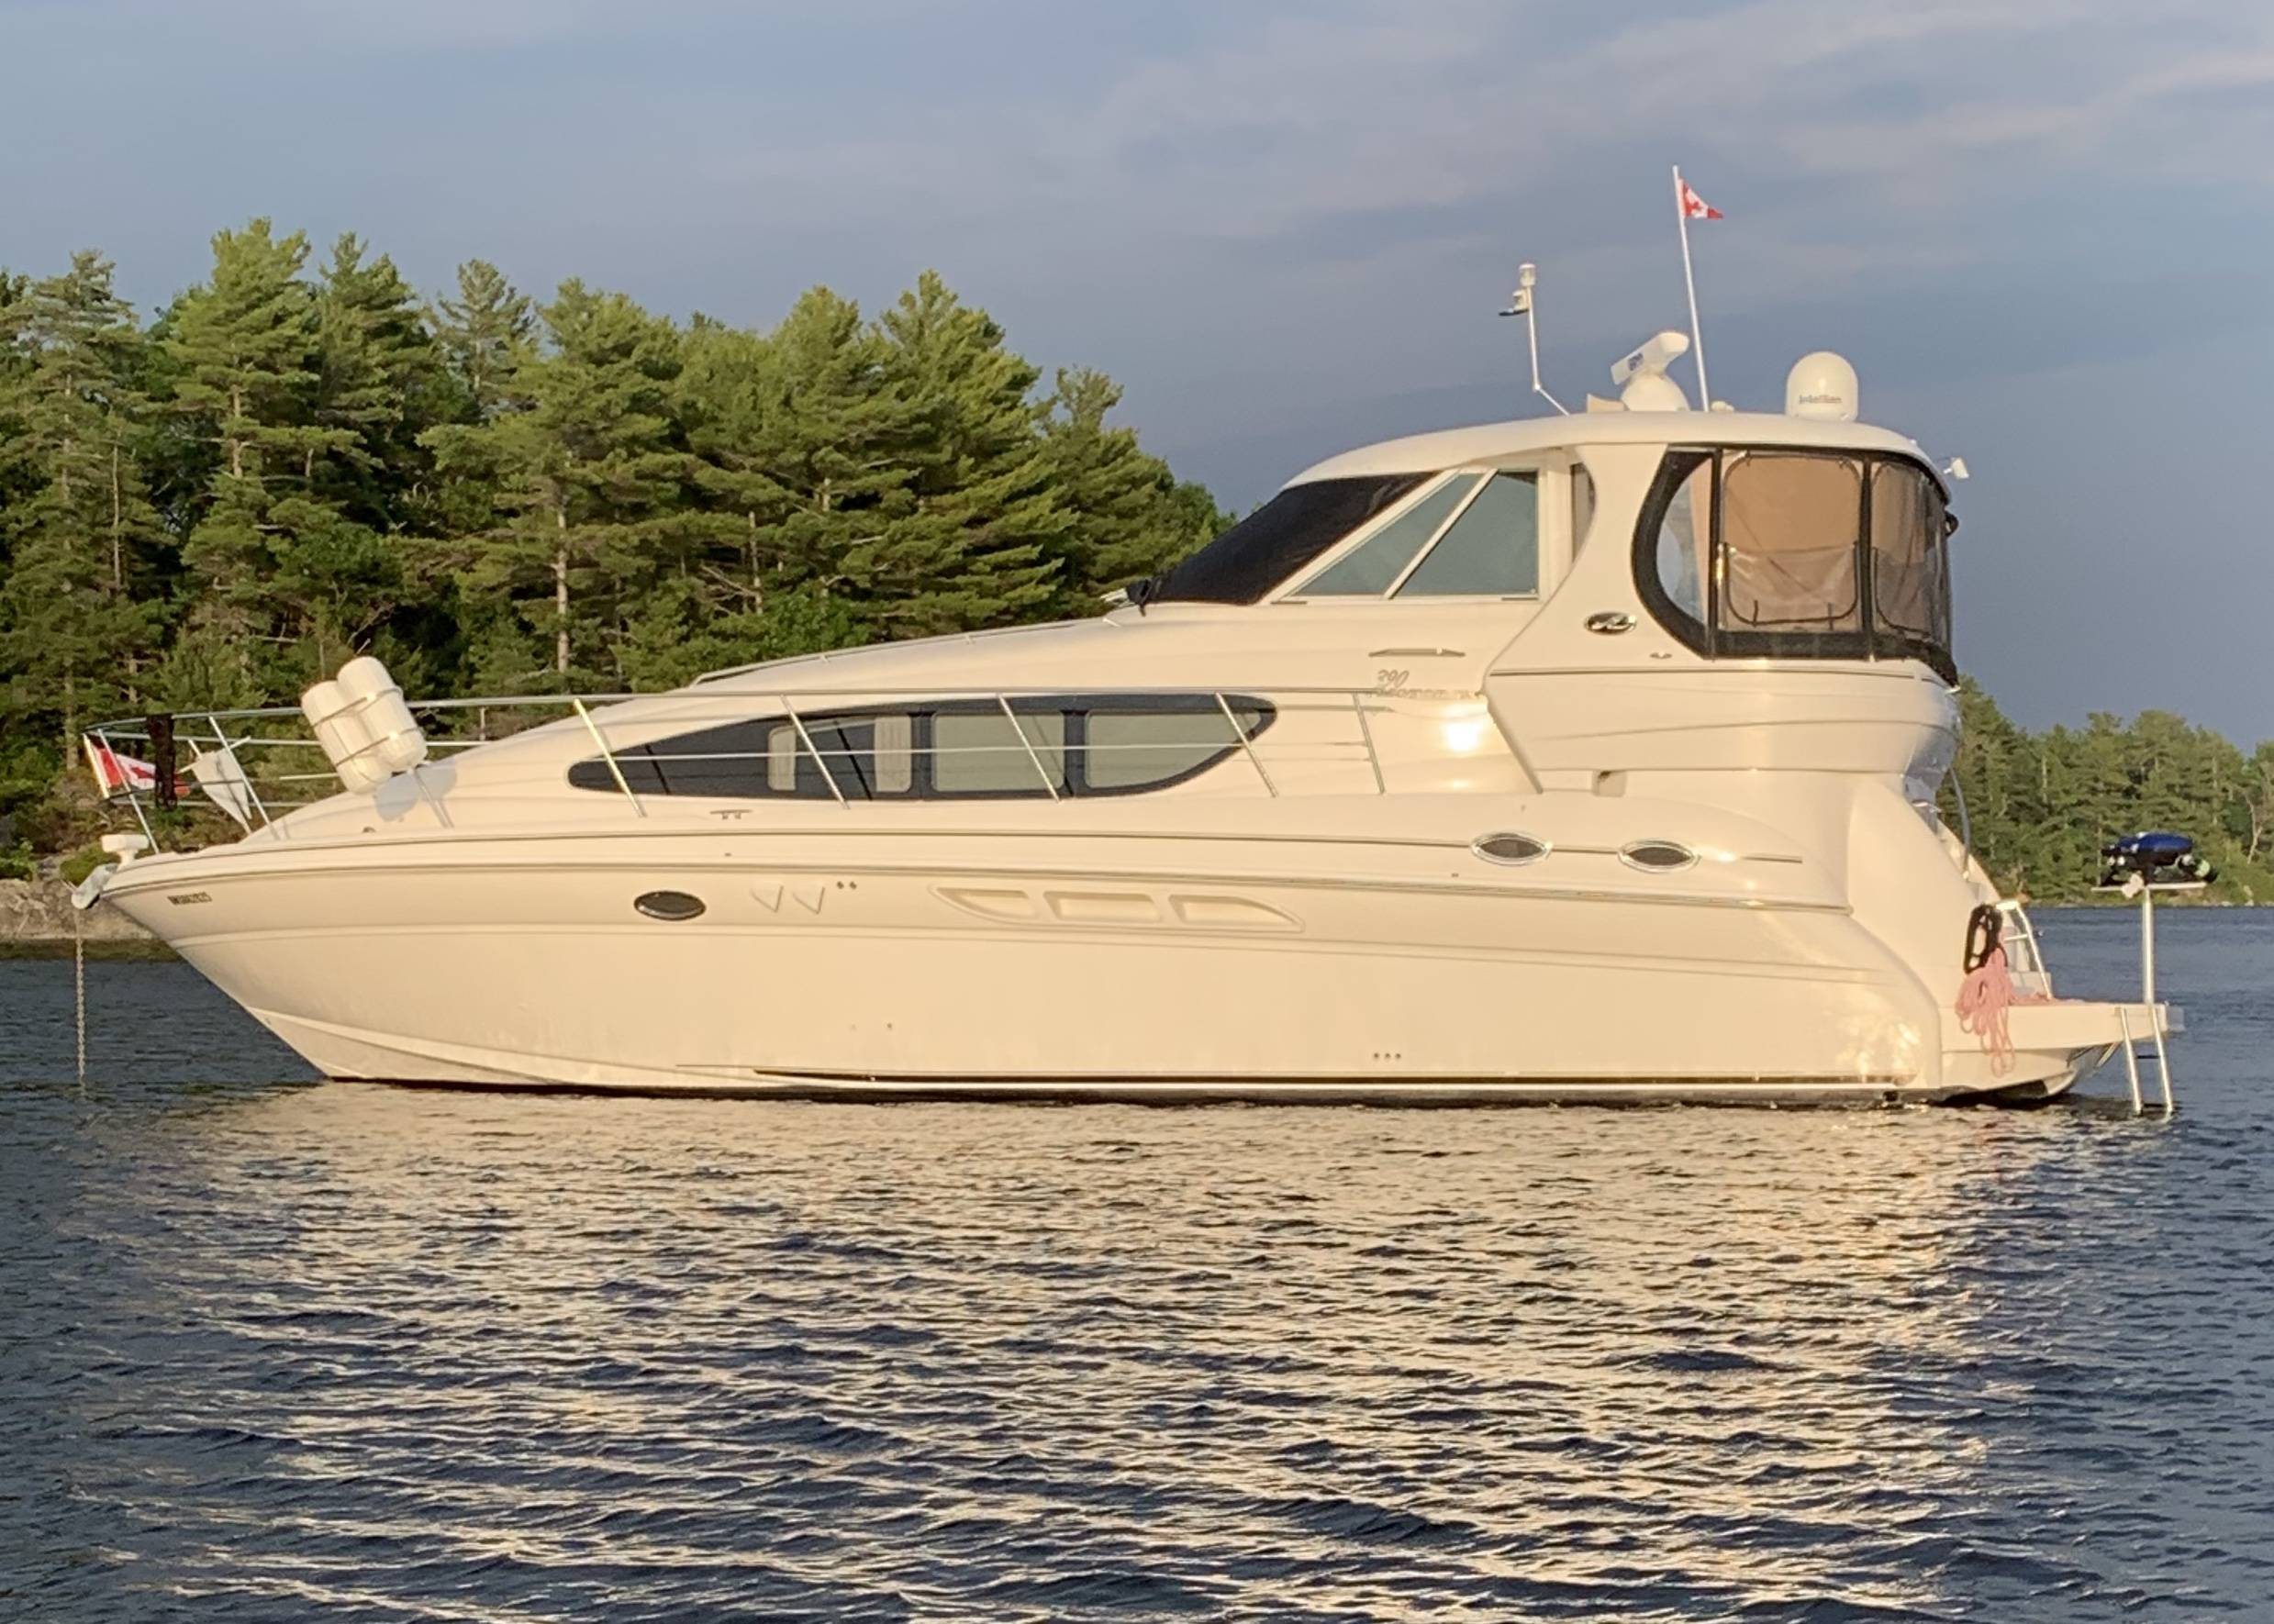 Pre-Owned 2003 SEA RAY 390 MOTOR YACHT